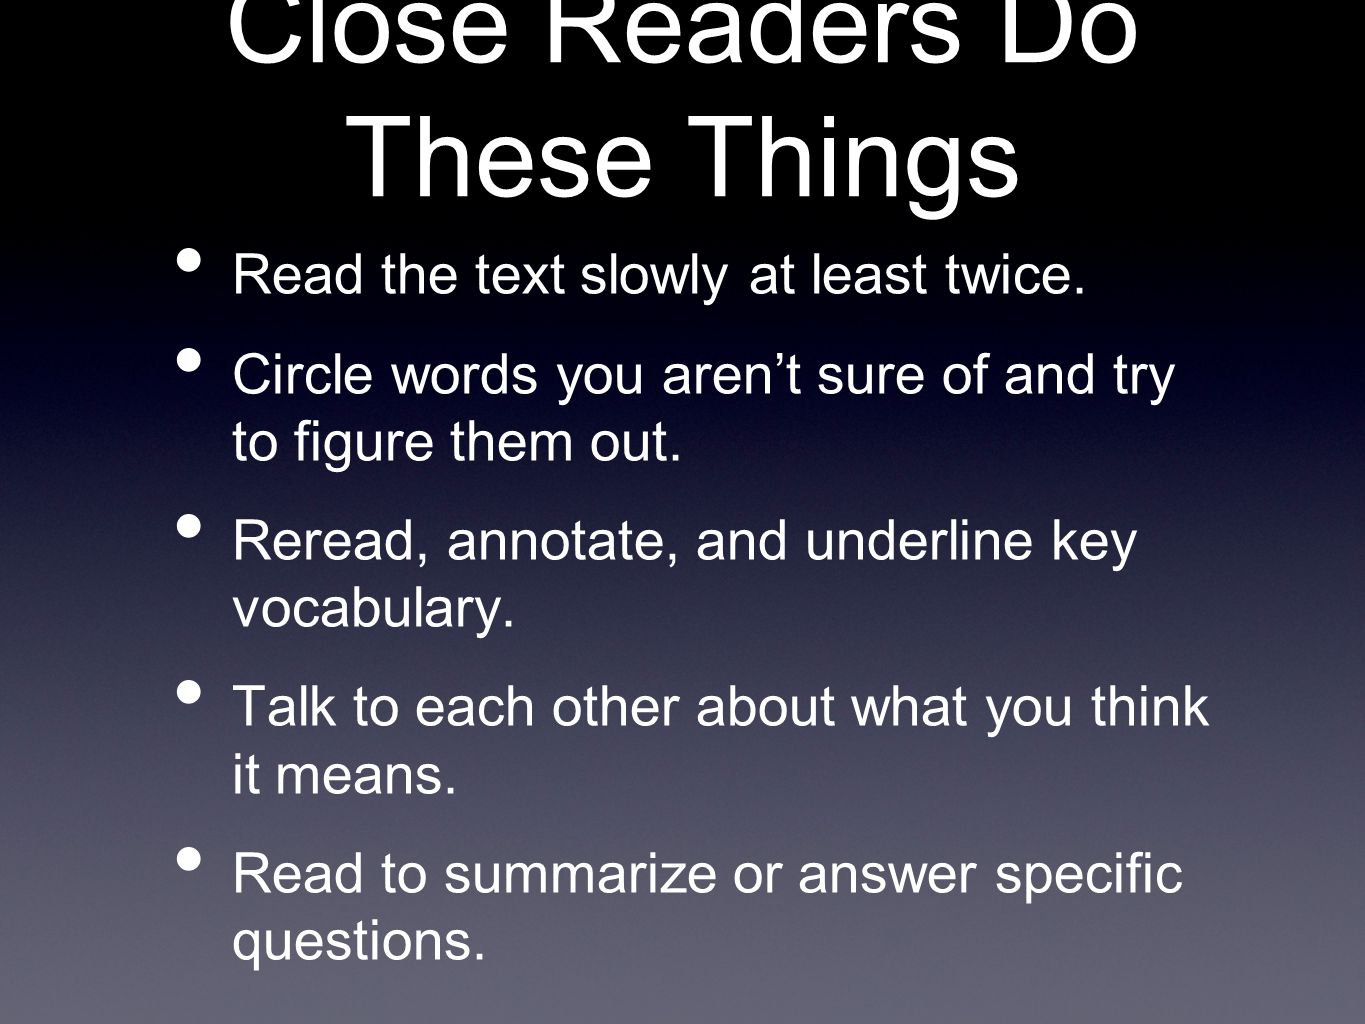 Close Readers Do These Things